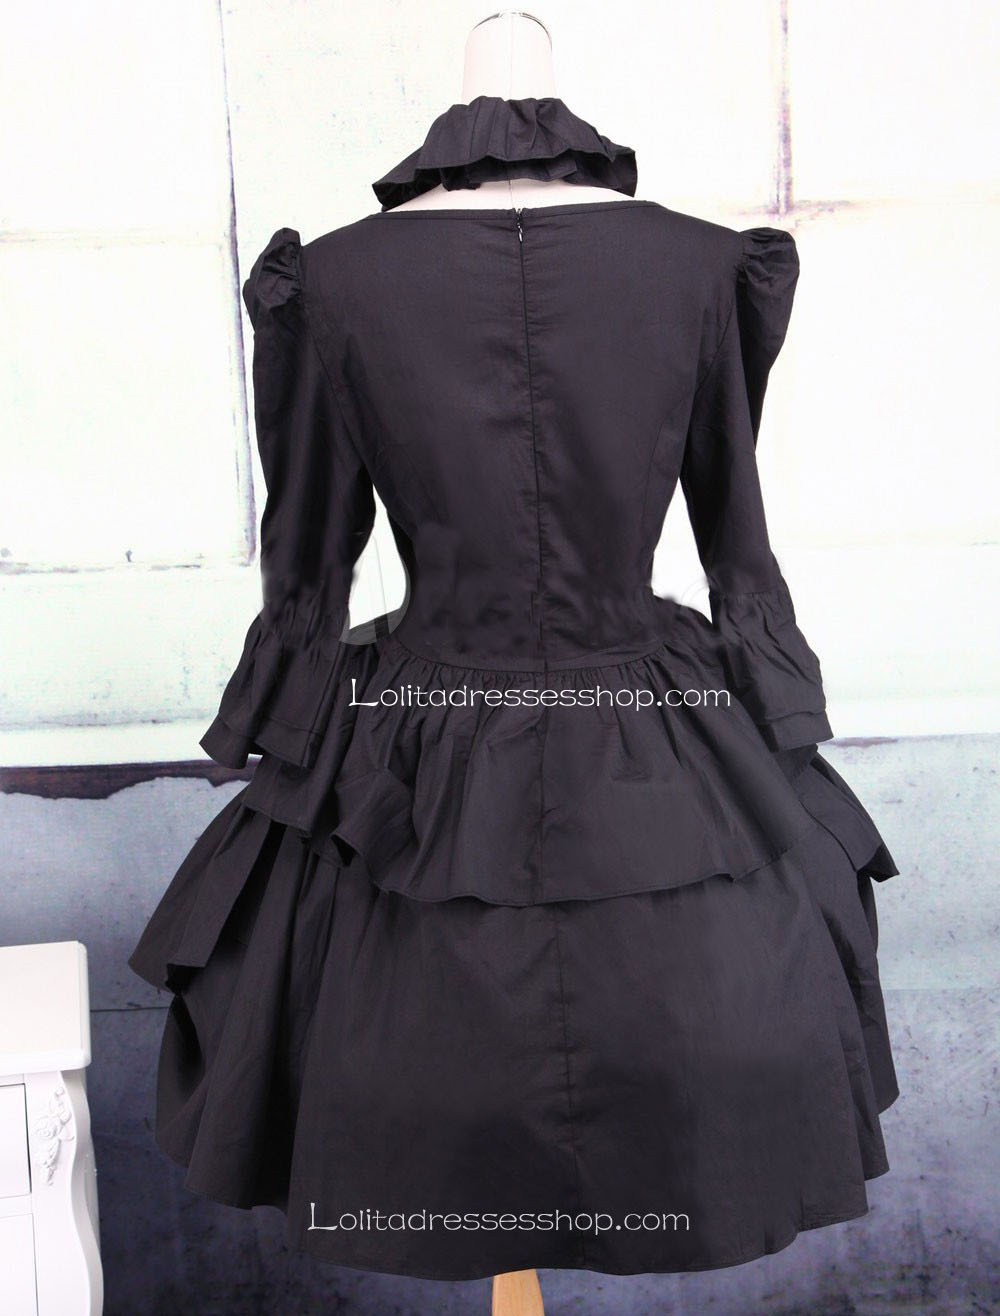 Black Cotton Square Neck Ruffles Punk Lolita Dress